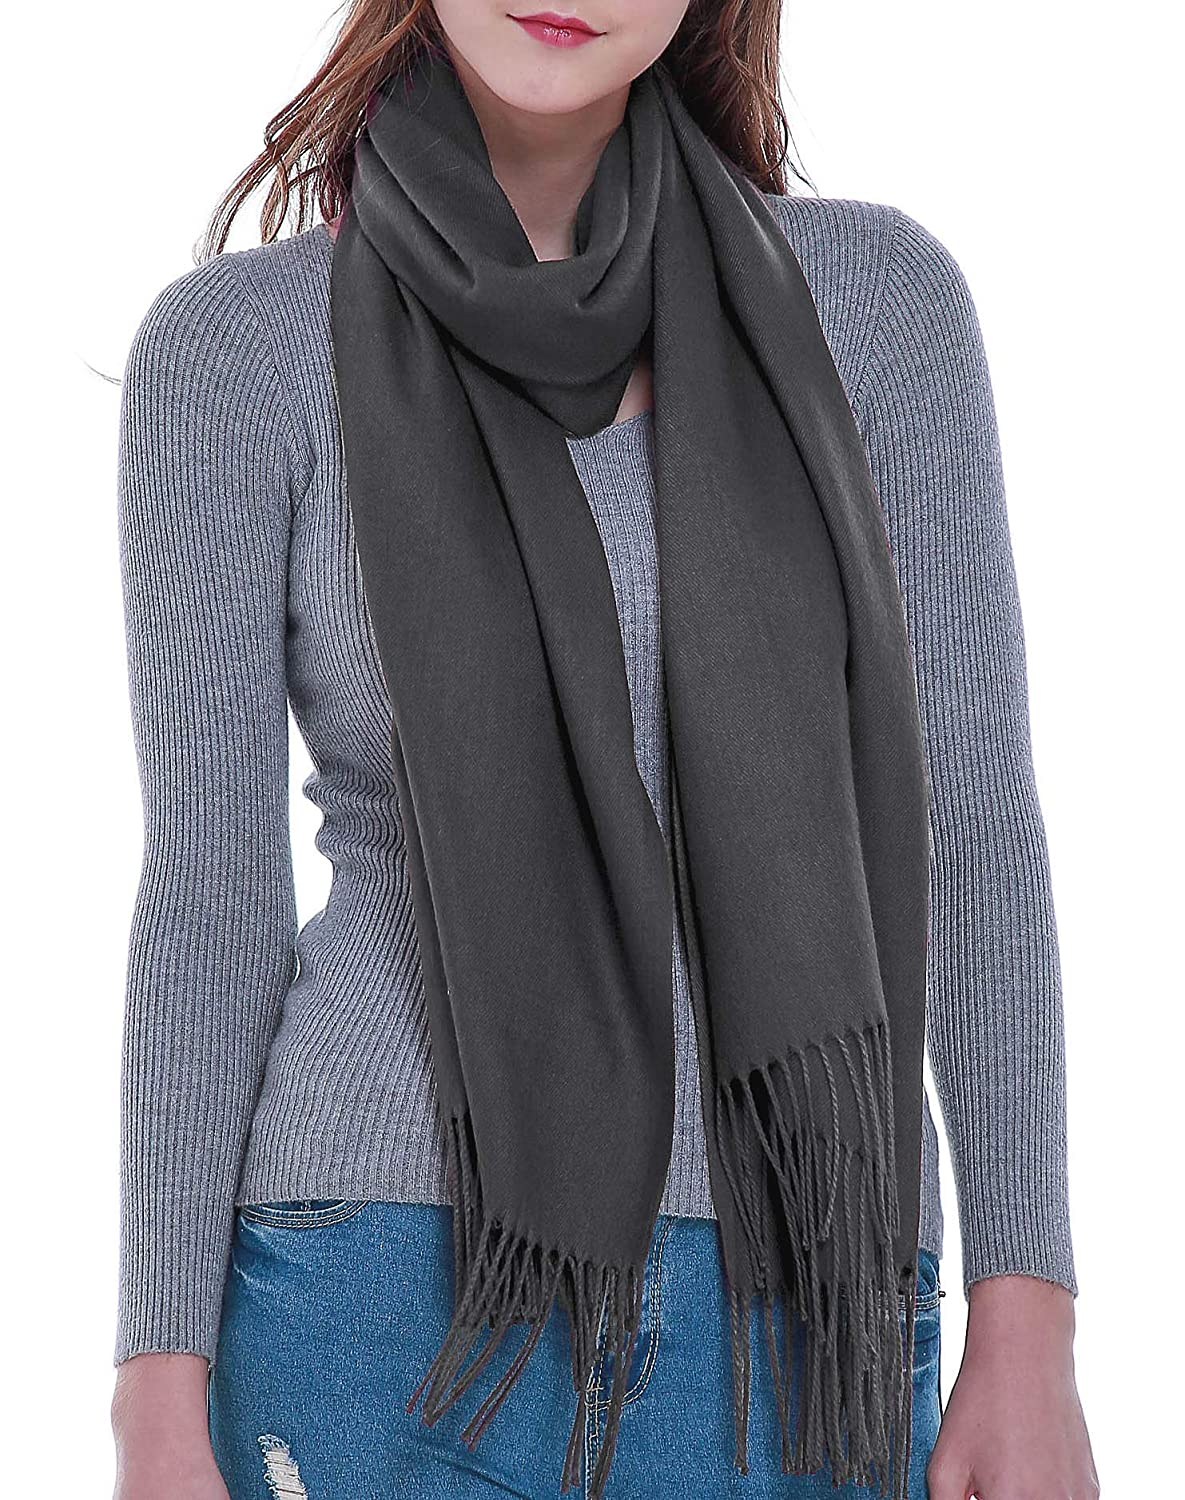 Deep Grey Rheane Large Cashmere Feel Pashmina Shawl Scarf in Solid colors